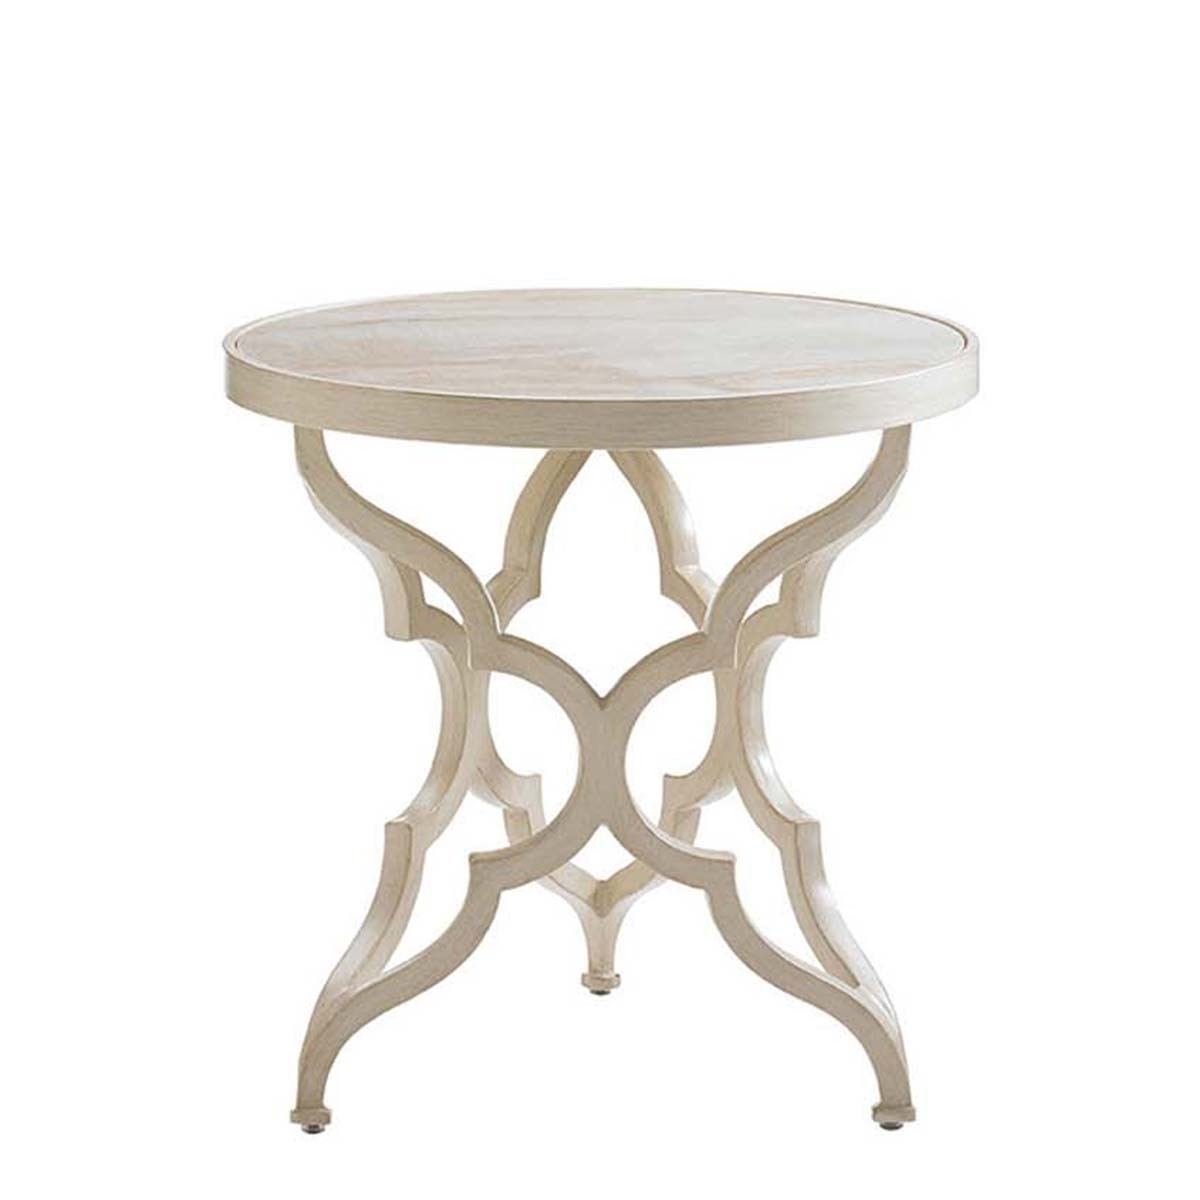 garden accent table with porcelain top tommy bahama outdoor tbo metal drum side meyda lamp shades target small tub chair acrylic wheels back patio furniture mat set round end